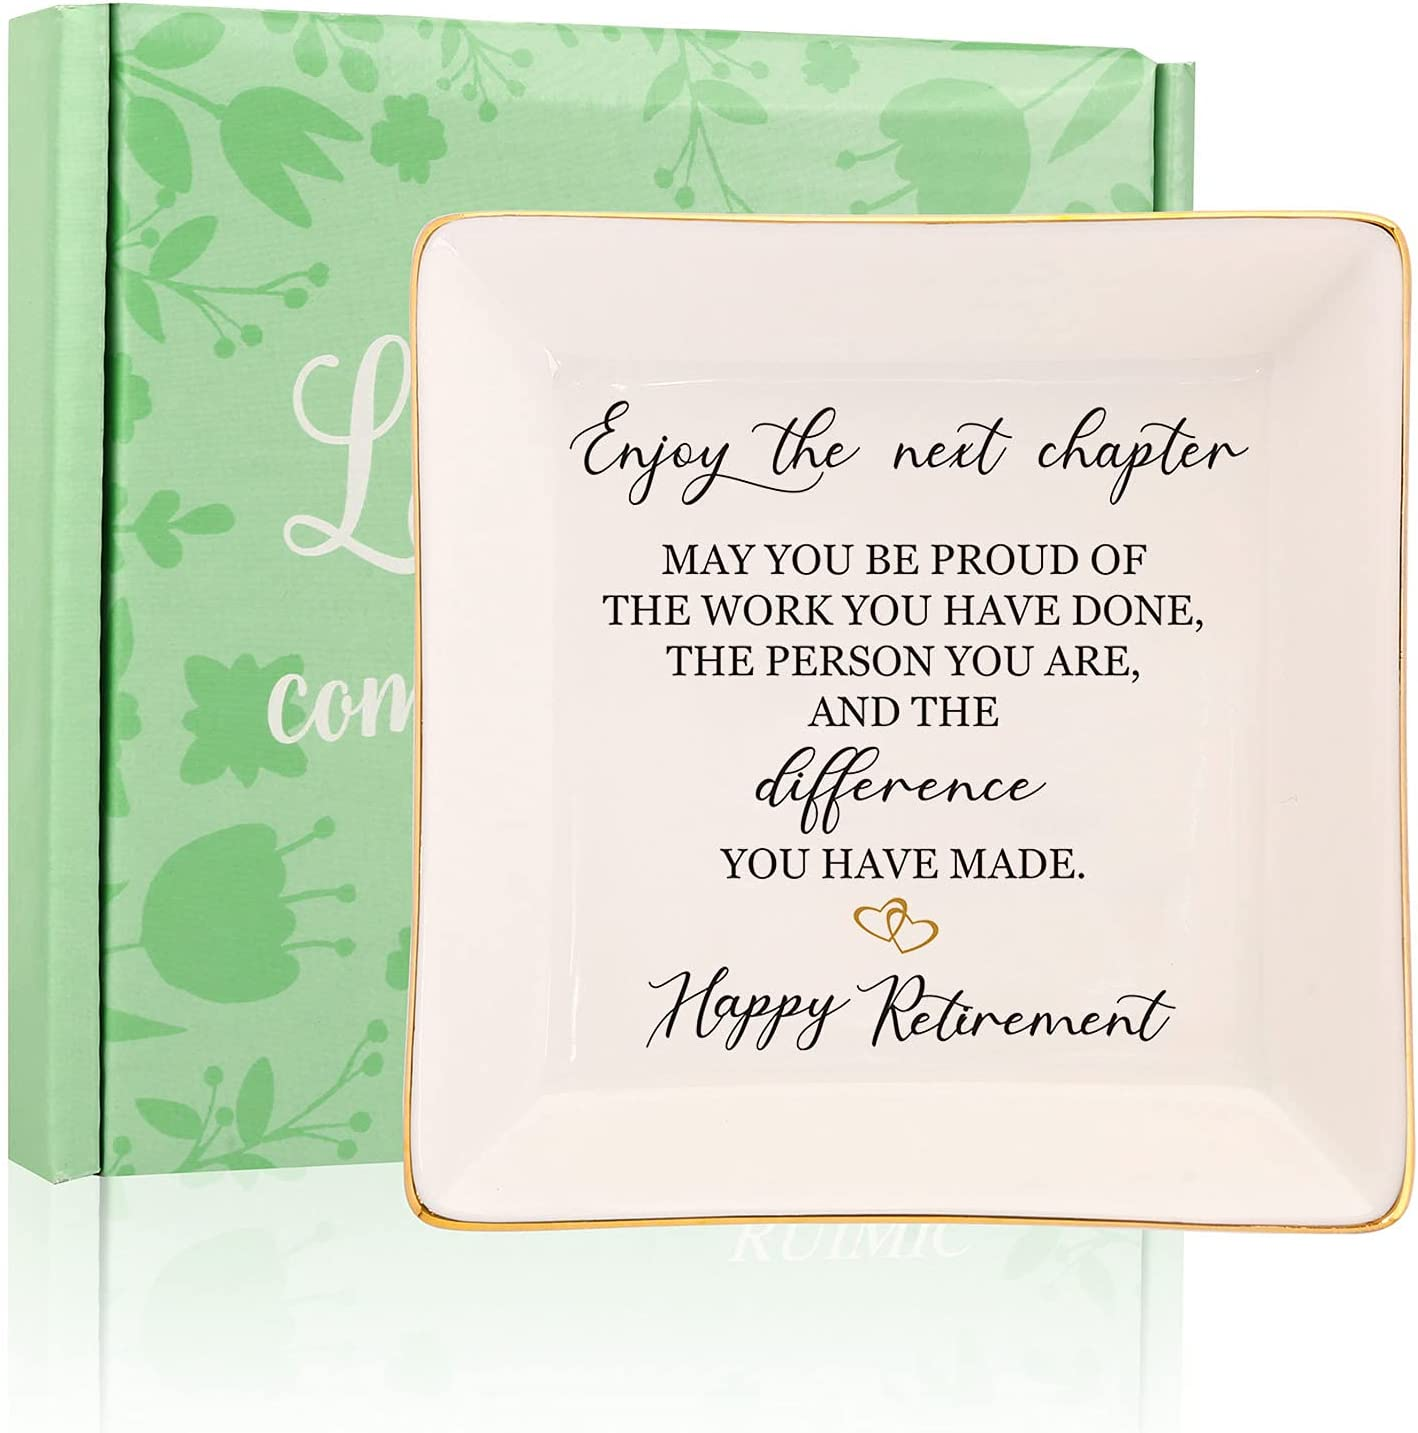 RUIMIC Retirement Gifts for Women-Ceramic Ring Dish Trinket Tray-Happy Retirement Appreciation Gift for Female, Mom, Coworkers, Teacher, Nurses, Boss, Friends-Enjoy the Next Chapter